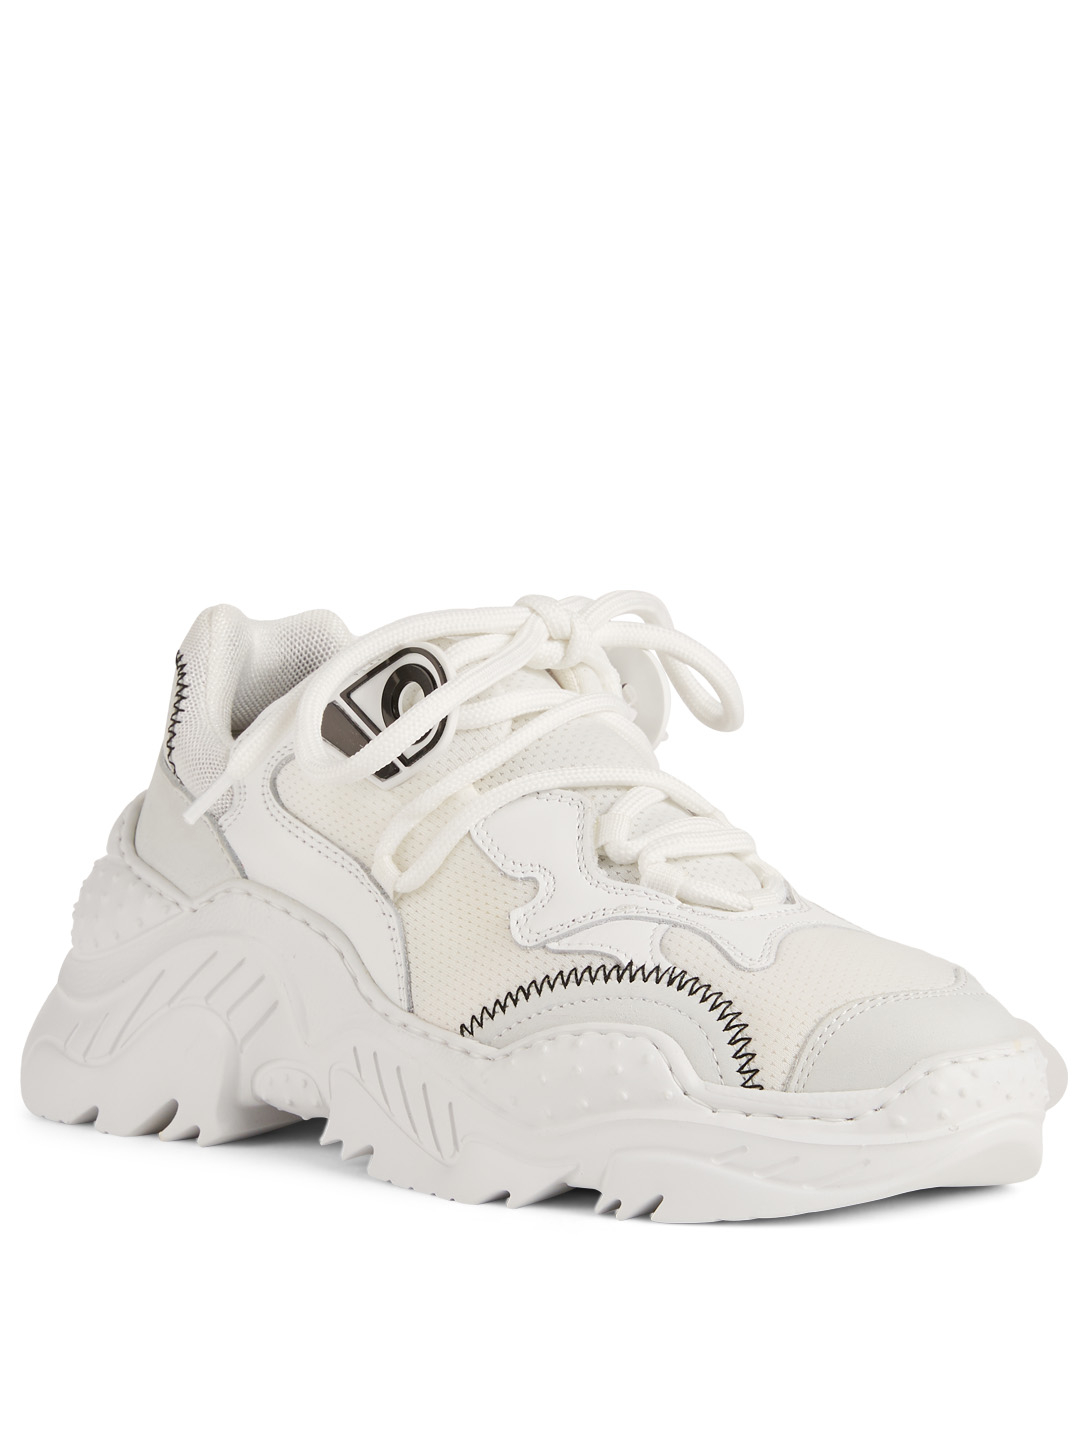 NO.21 Billy Sneakers Women's White